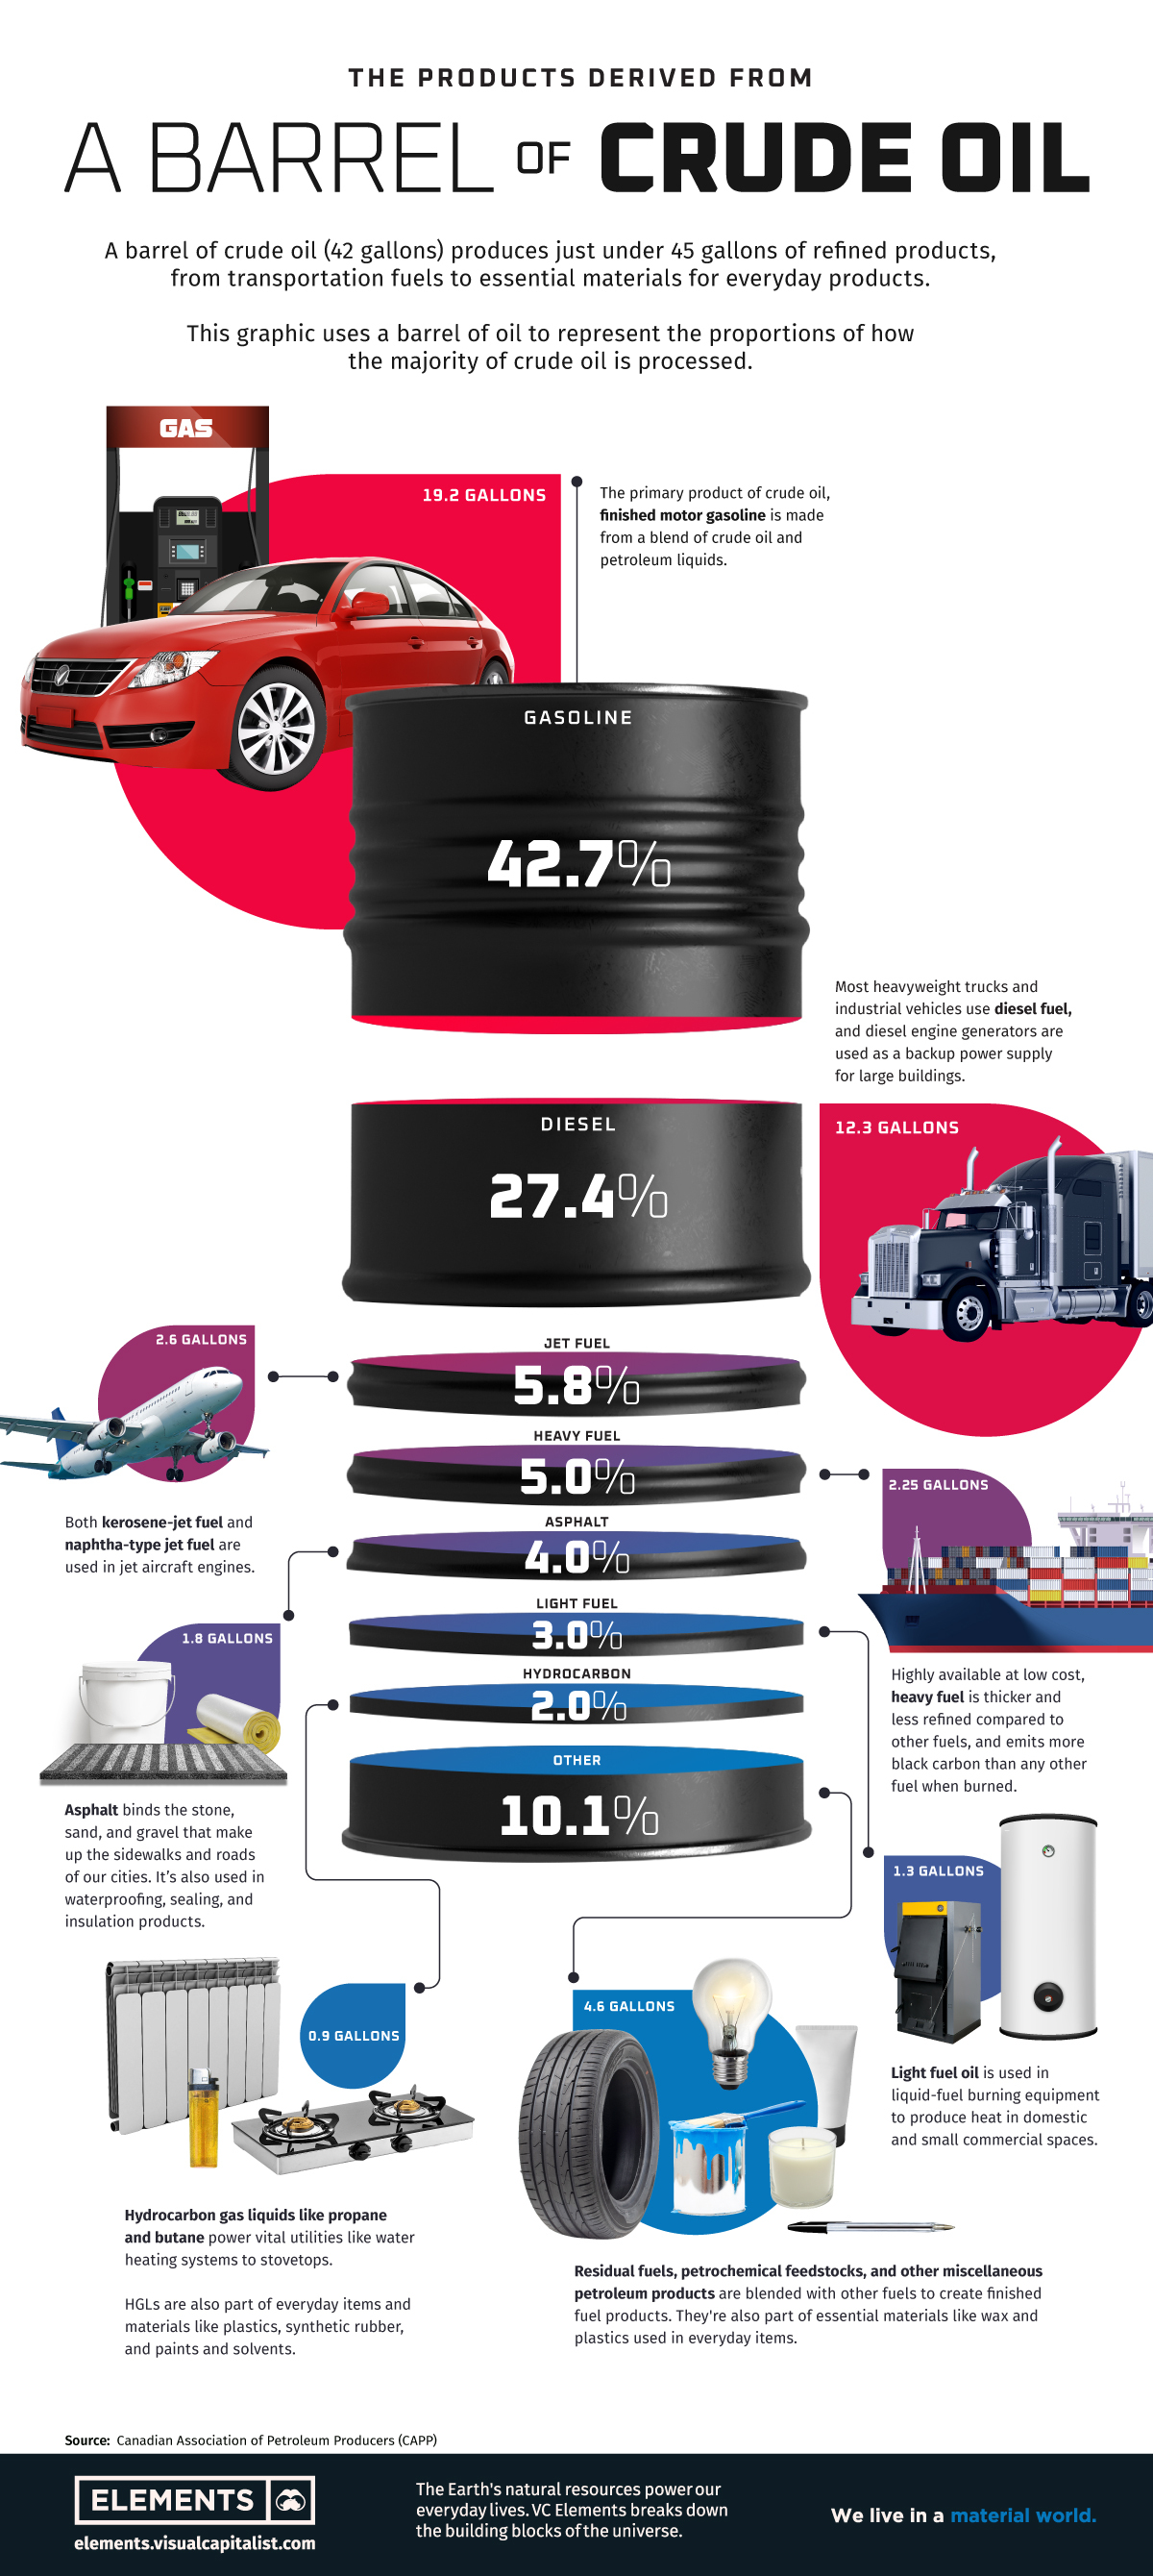 Visualizing the Products and Fuels Made from Crude Oil